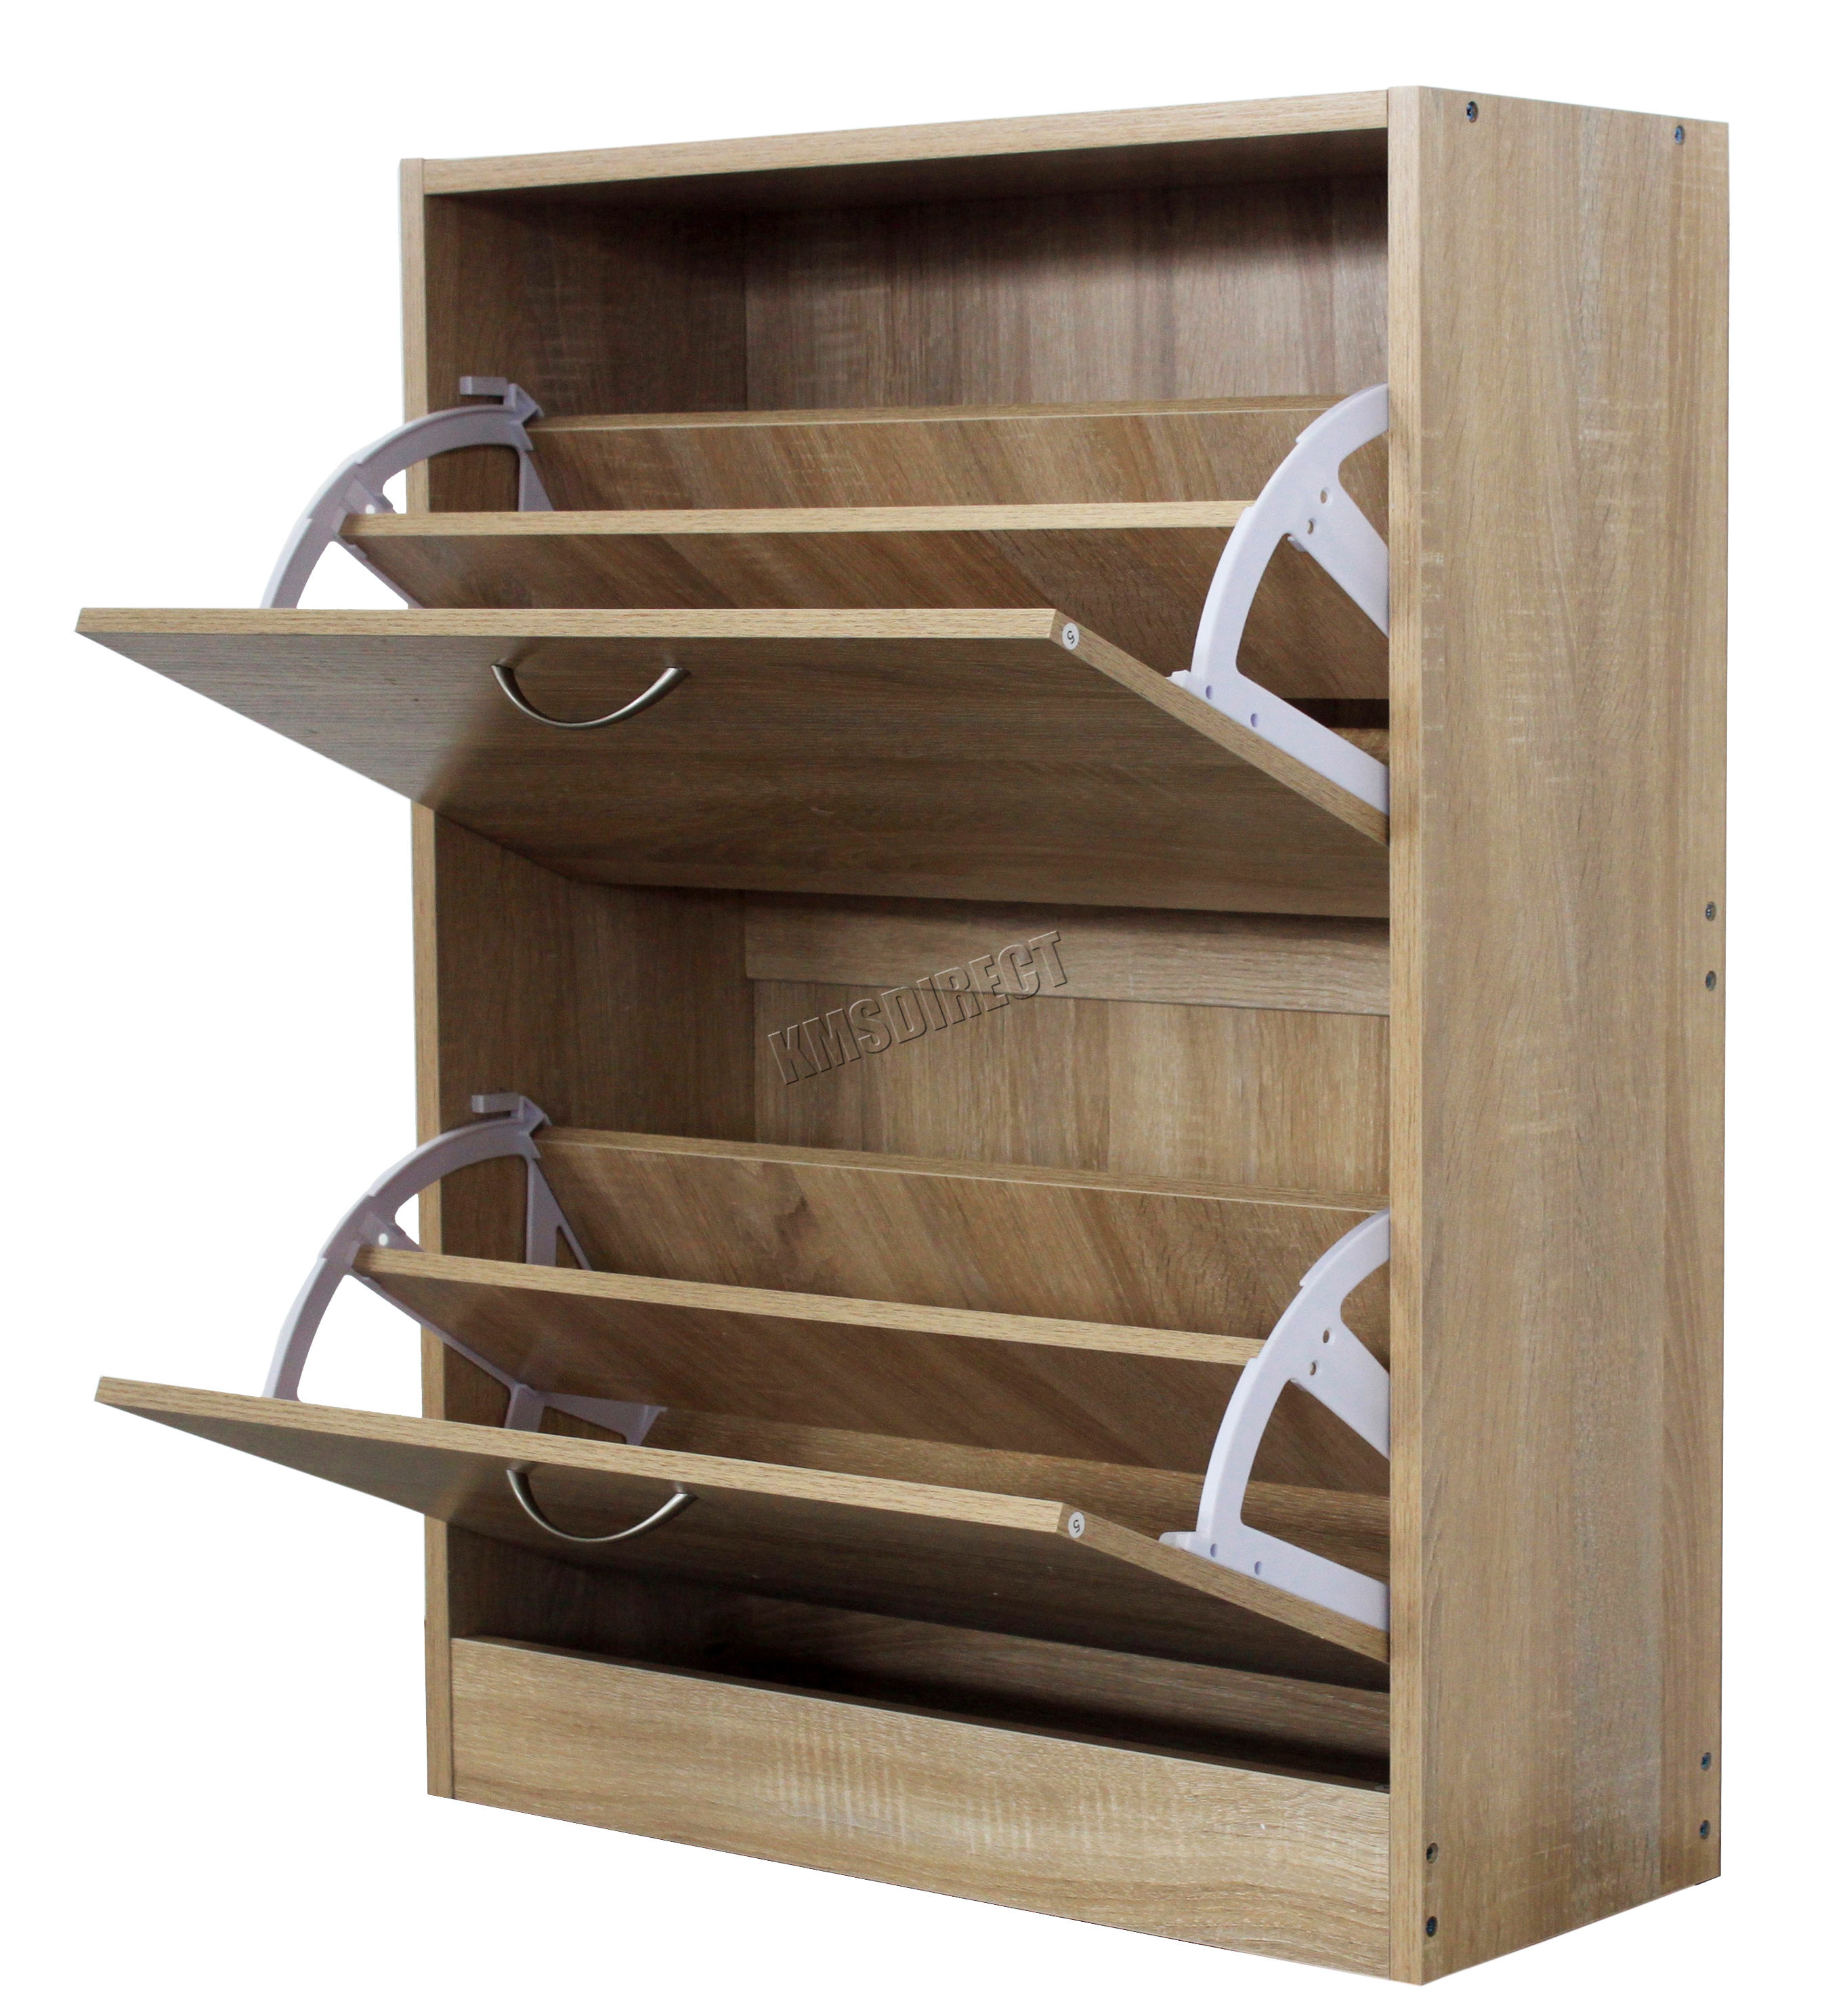 FoxHunter Wooden Shoe Storage Cabinet 2 Drawer Footwear